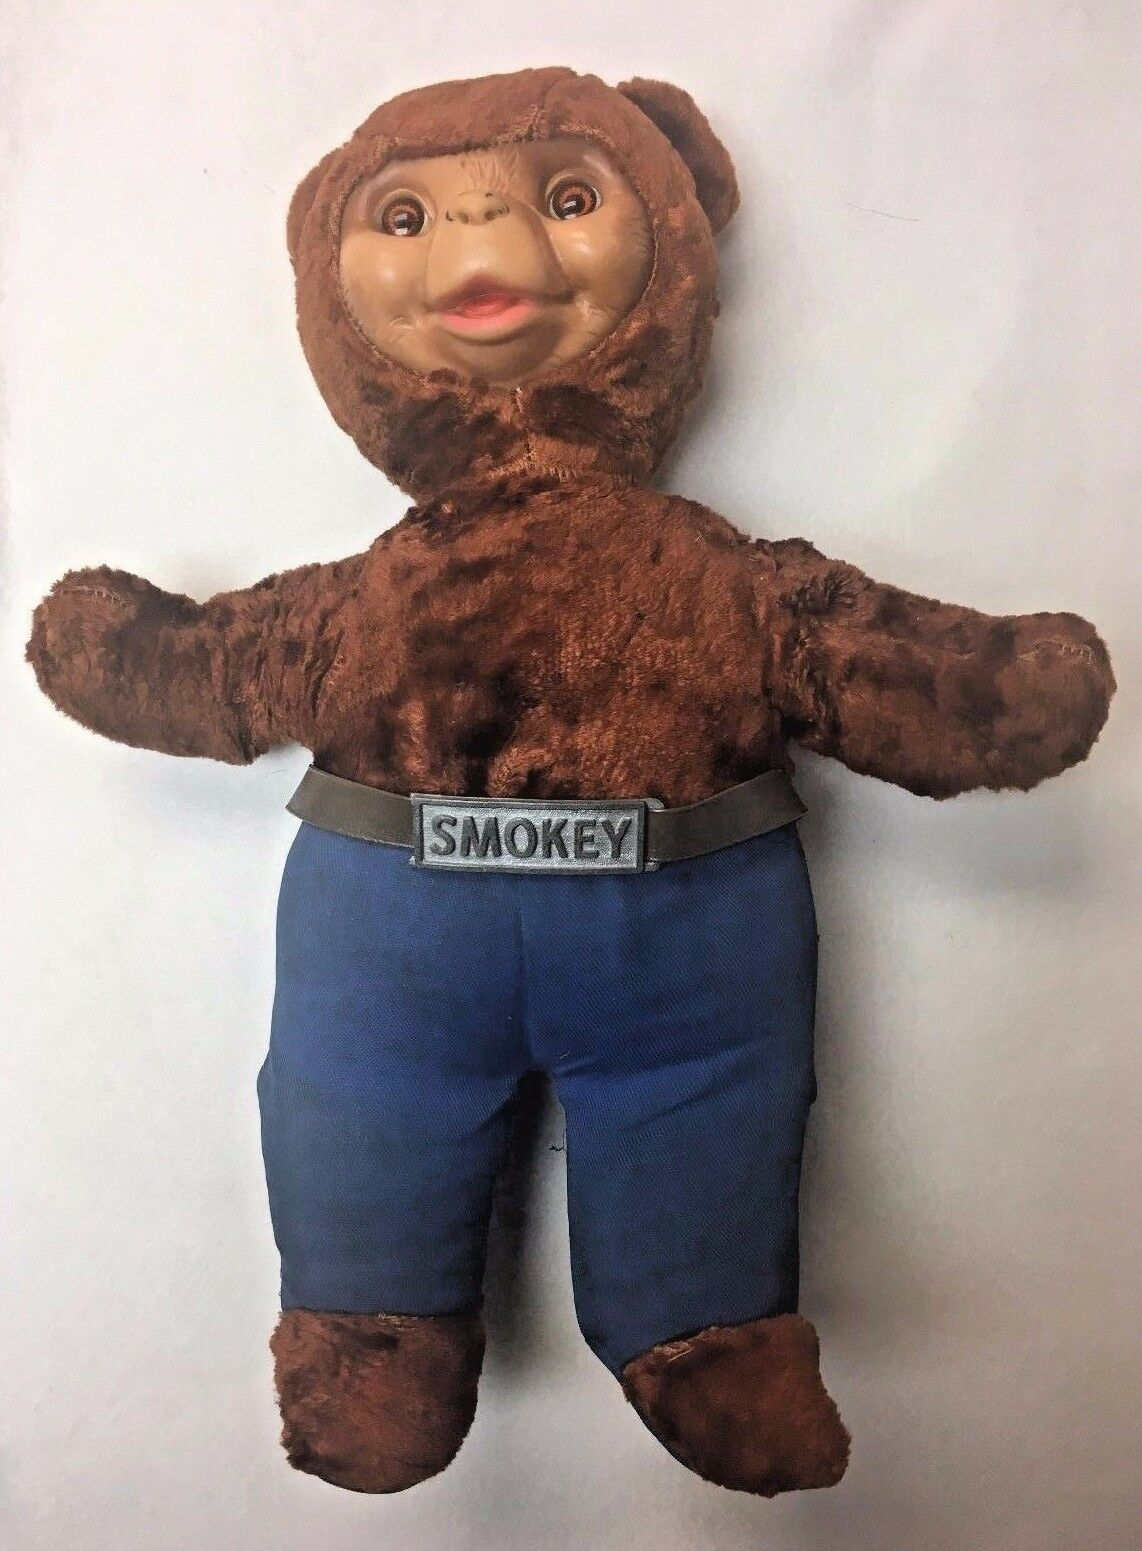 Vintage Old Ideal Smokey the Fires Bear Ranger Prevent Forest Fires the Stuffed Teddy Bear 968e07